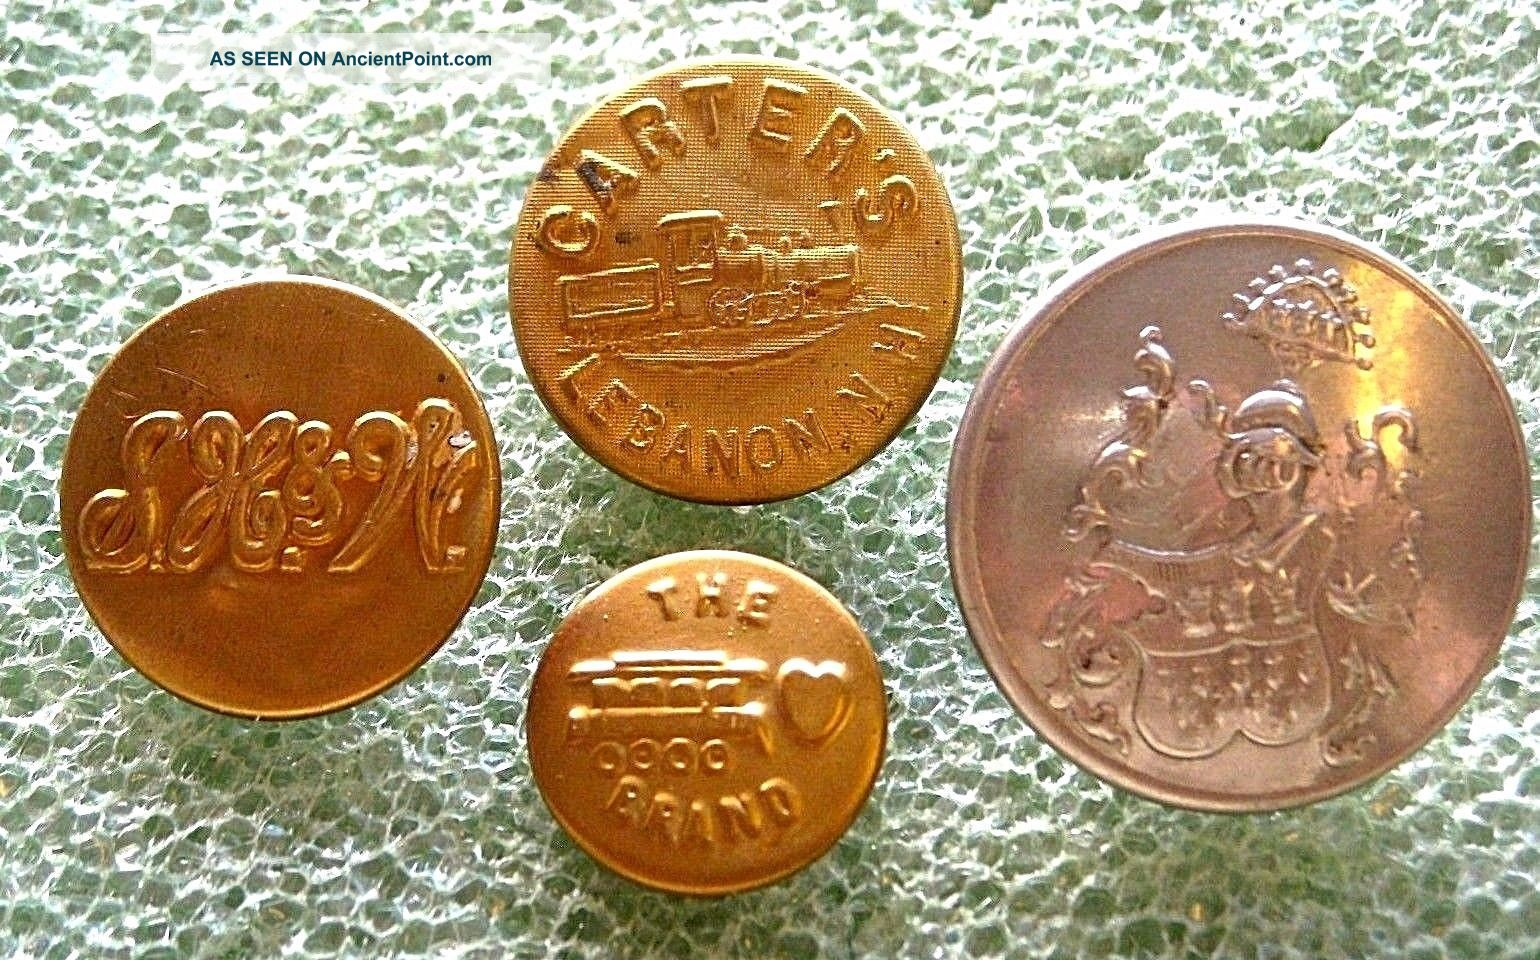 4 Antique Work Uniform Buttons Carter ' S Carhartt S.  H.  &w.  Livery Buttons photo